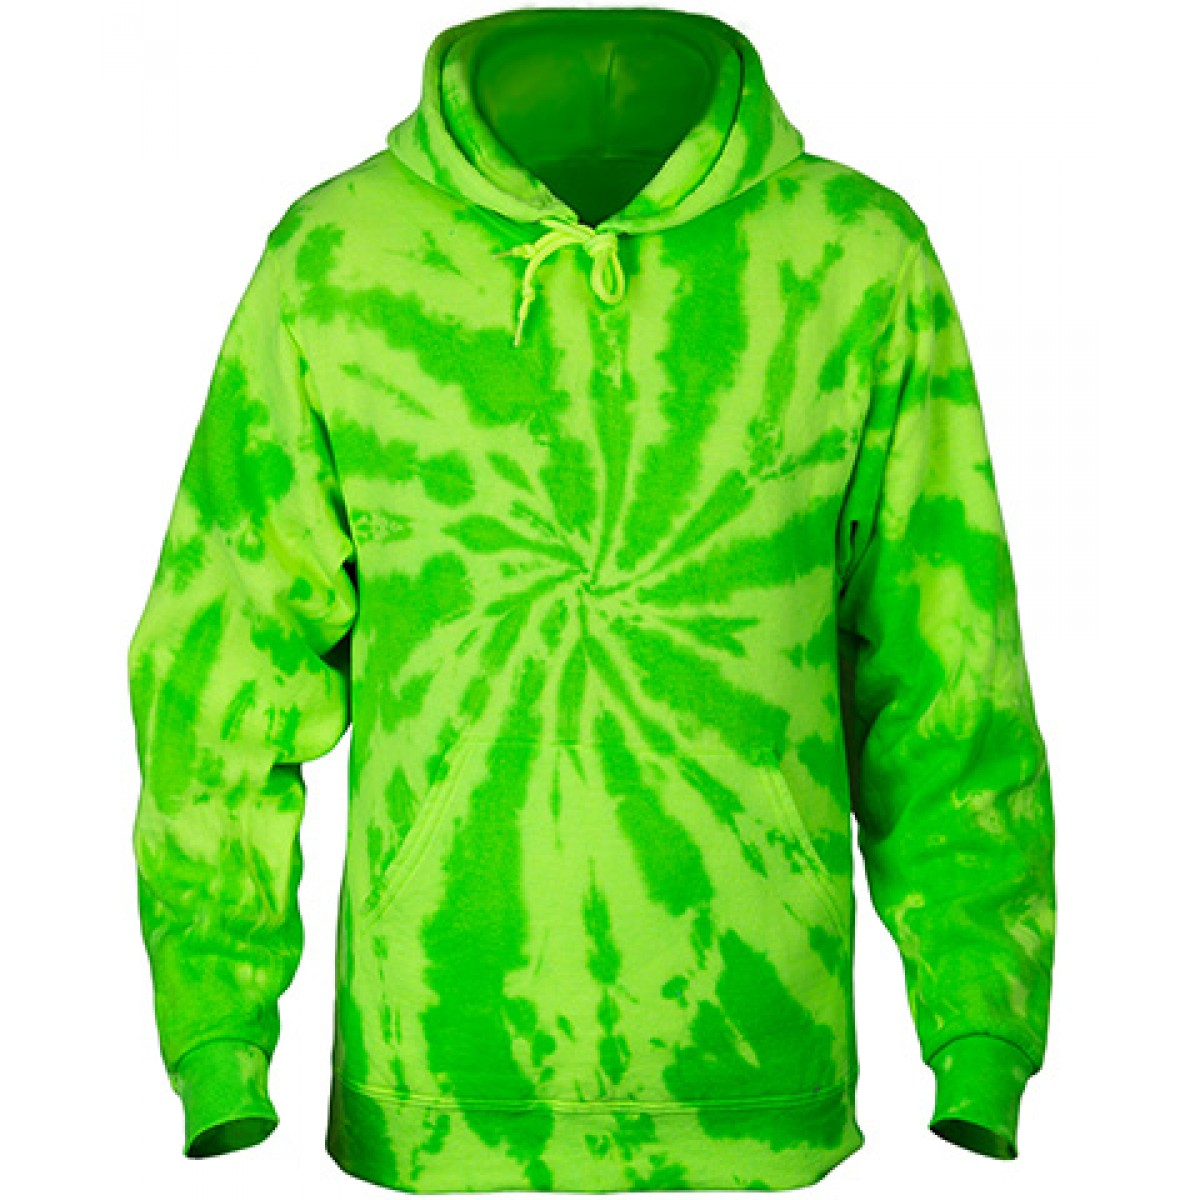 Tie-Dye Pullover Hooded Sweatshirt-Neon Green-3XL